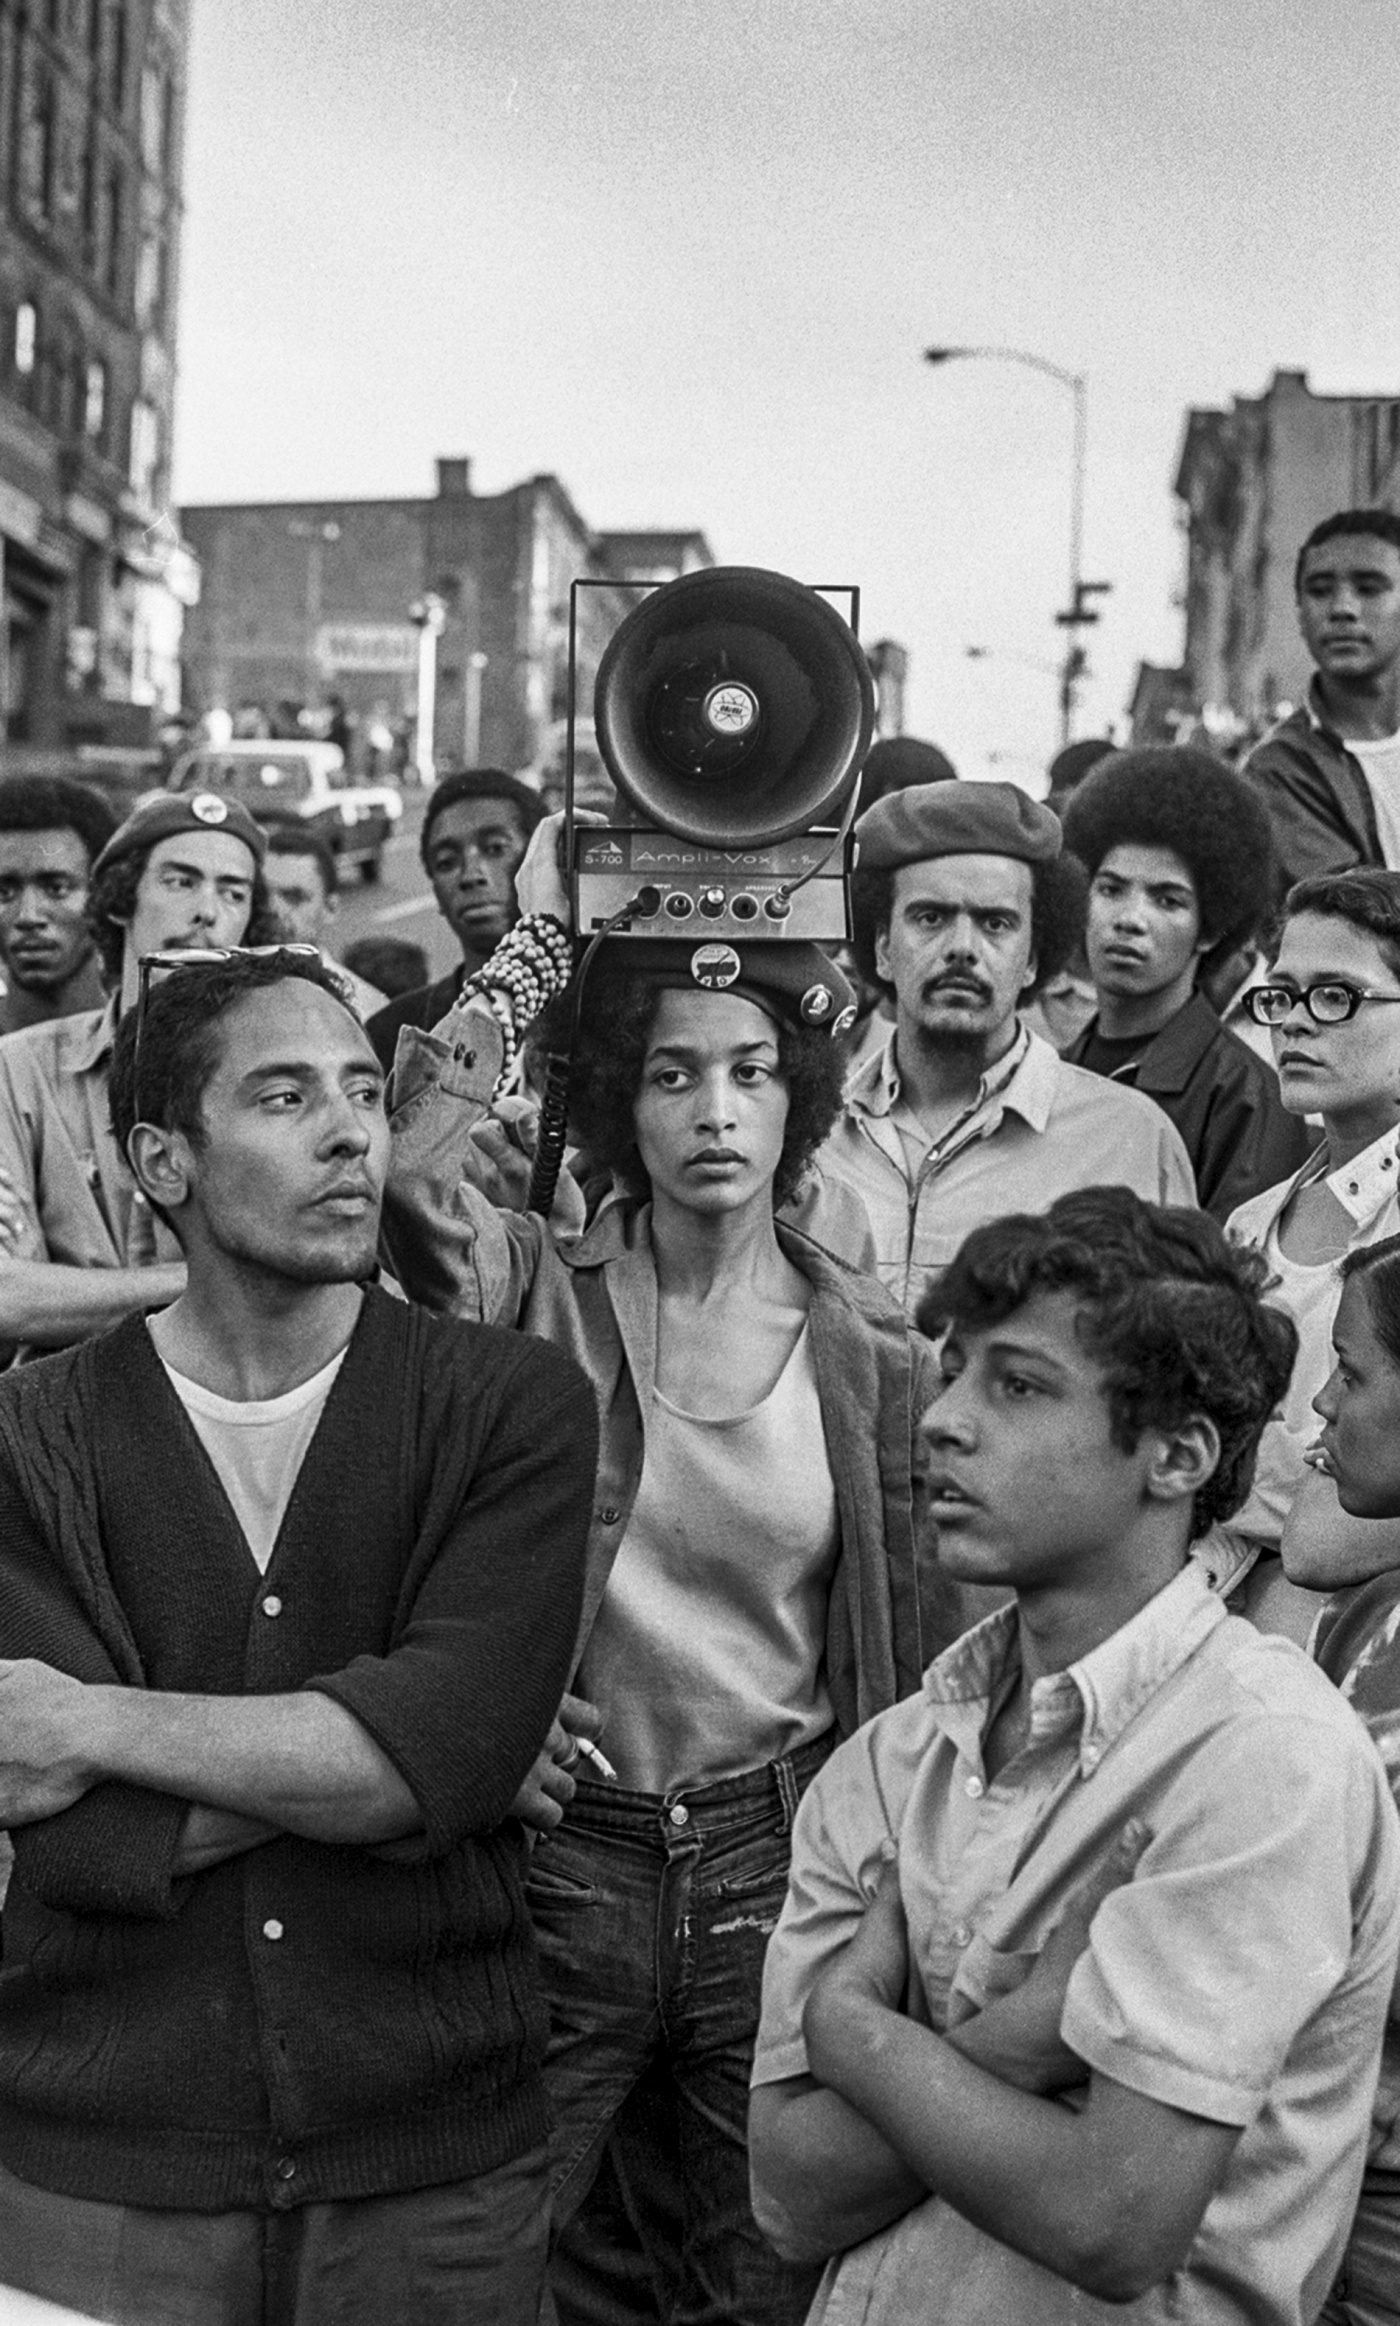 Image from the book The Young Lords